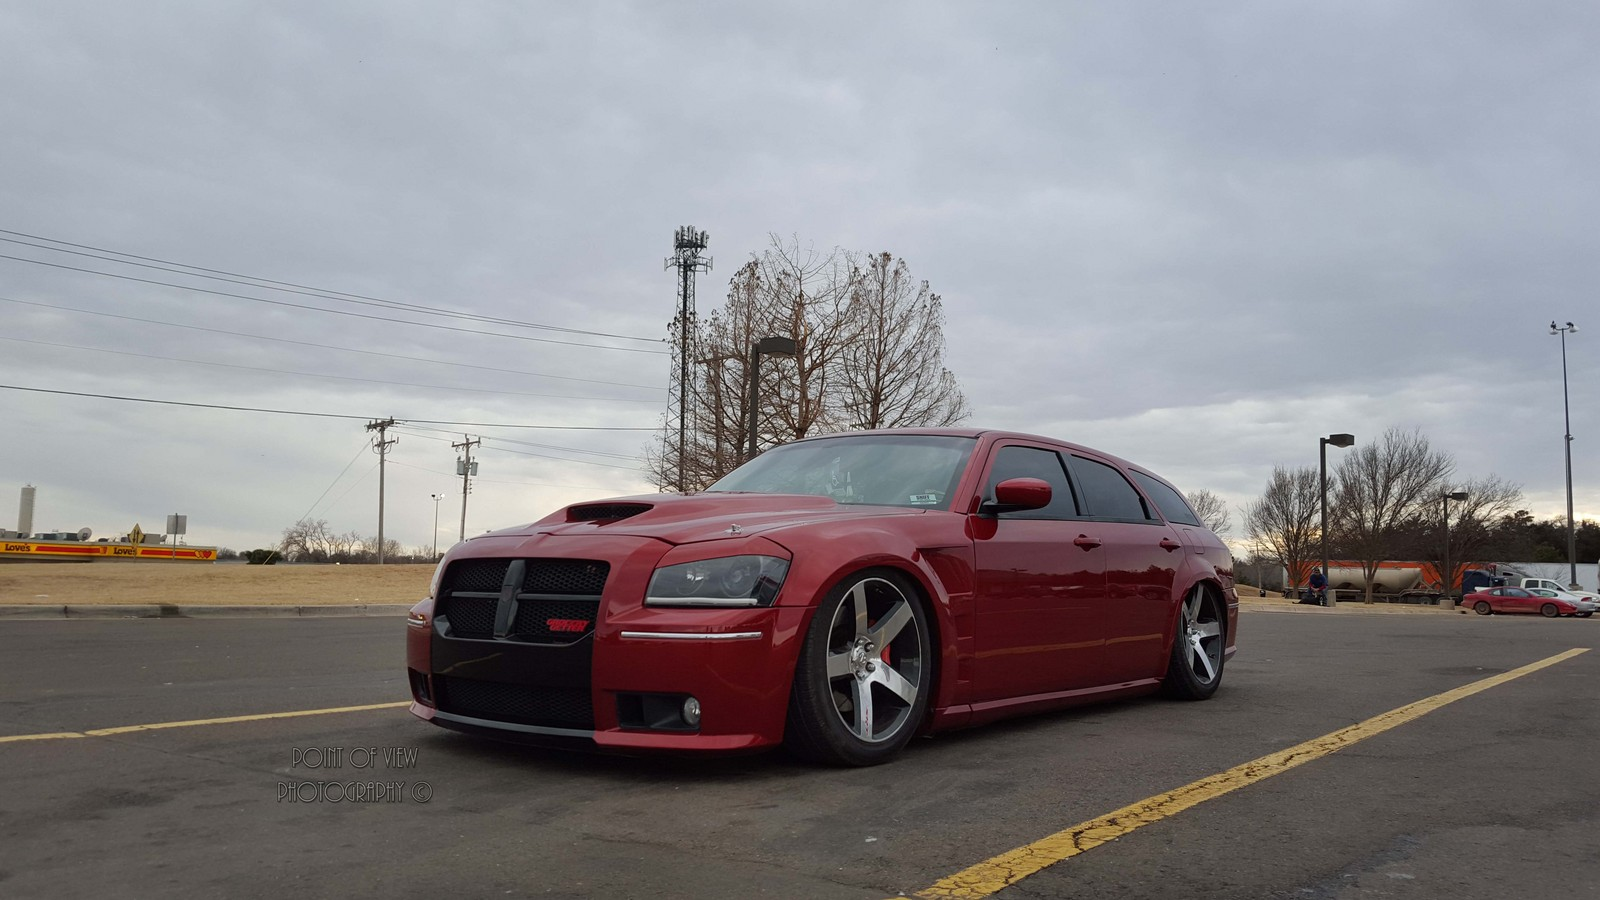 Inferno Red 2006 Dodge Magnum SRT